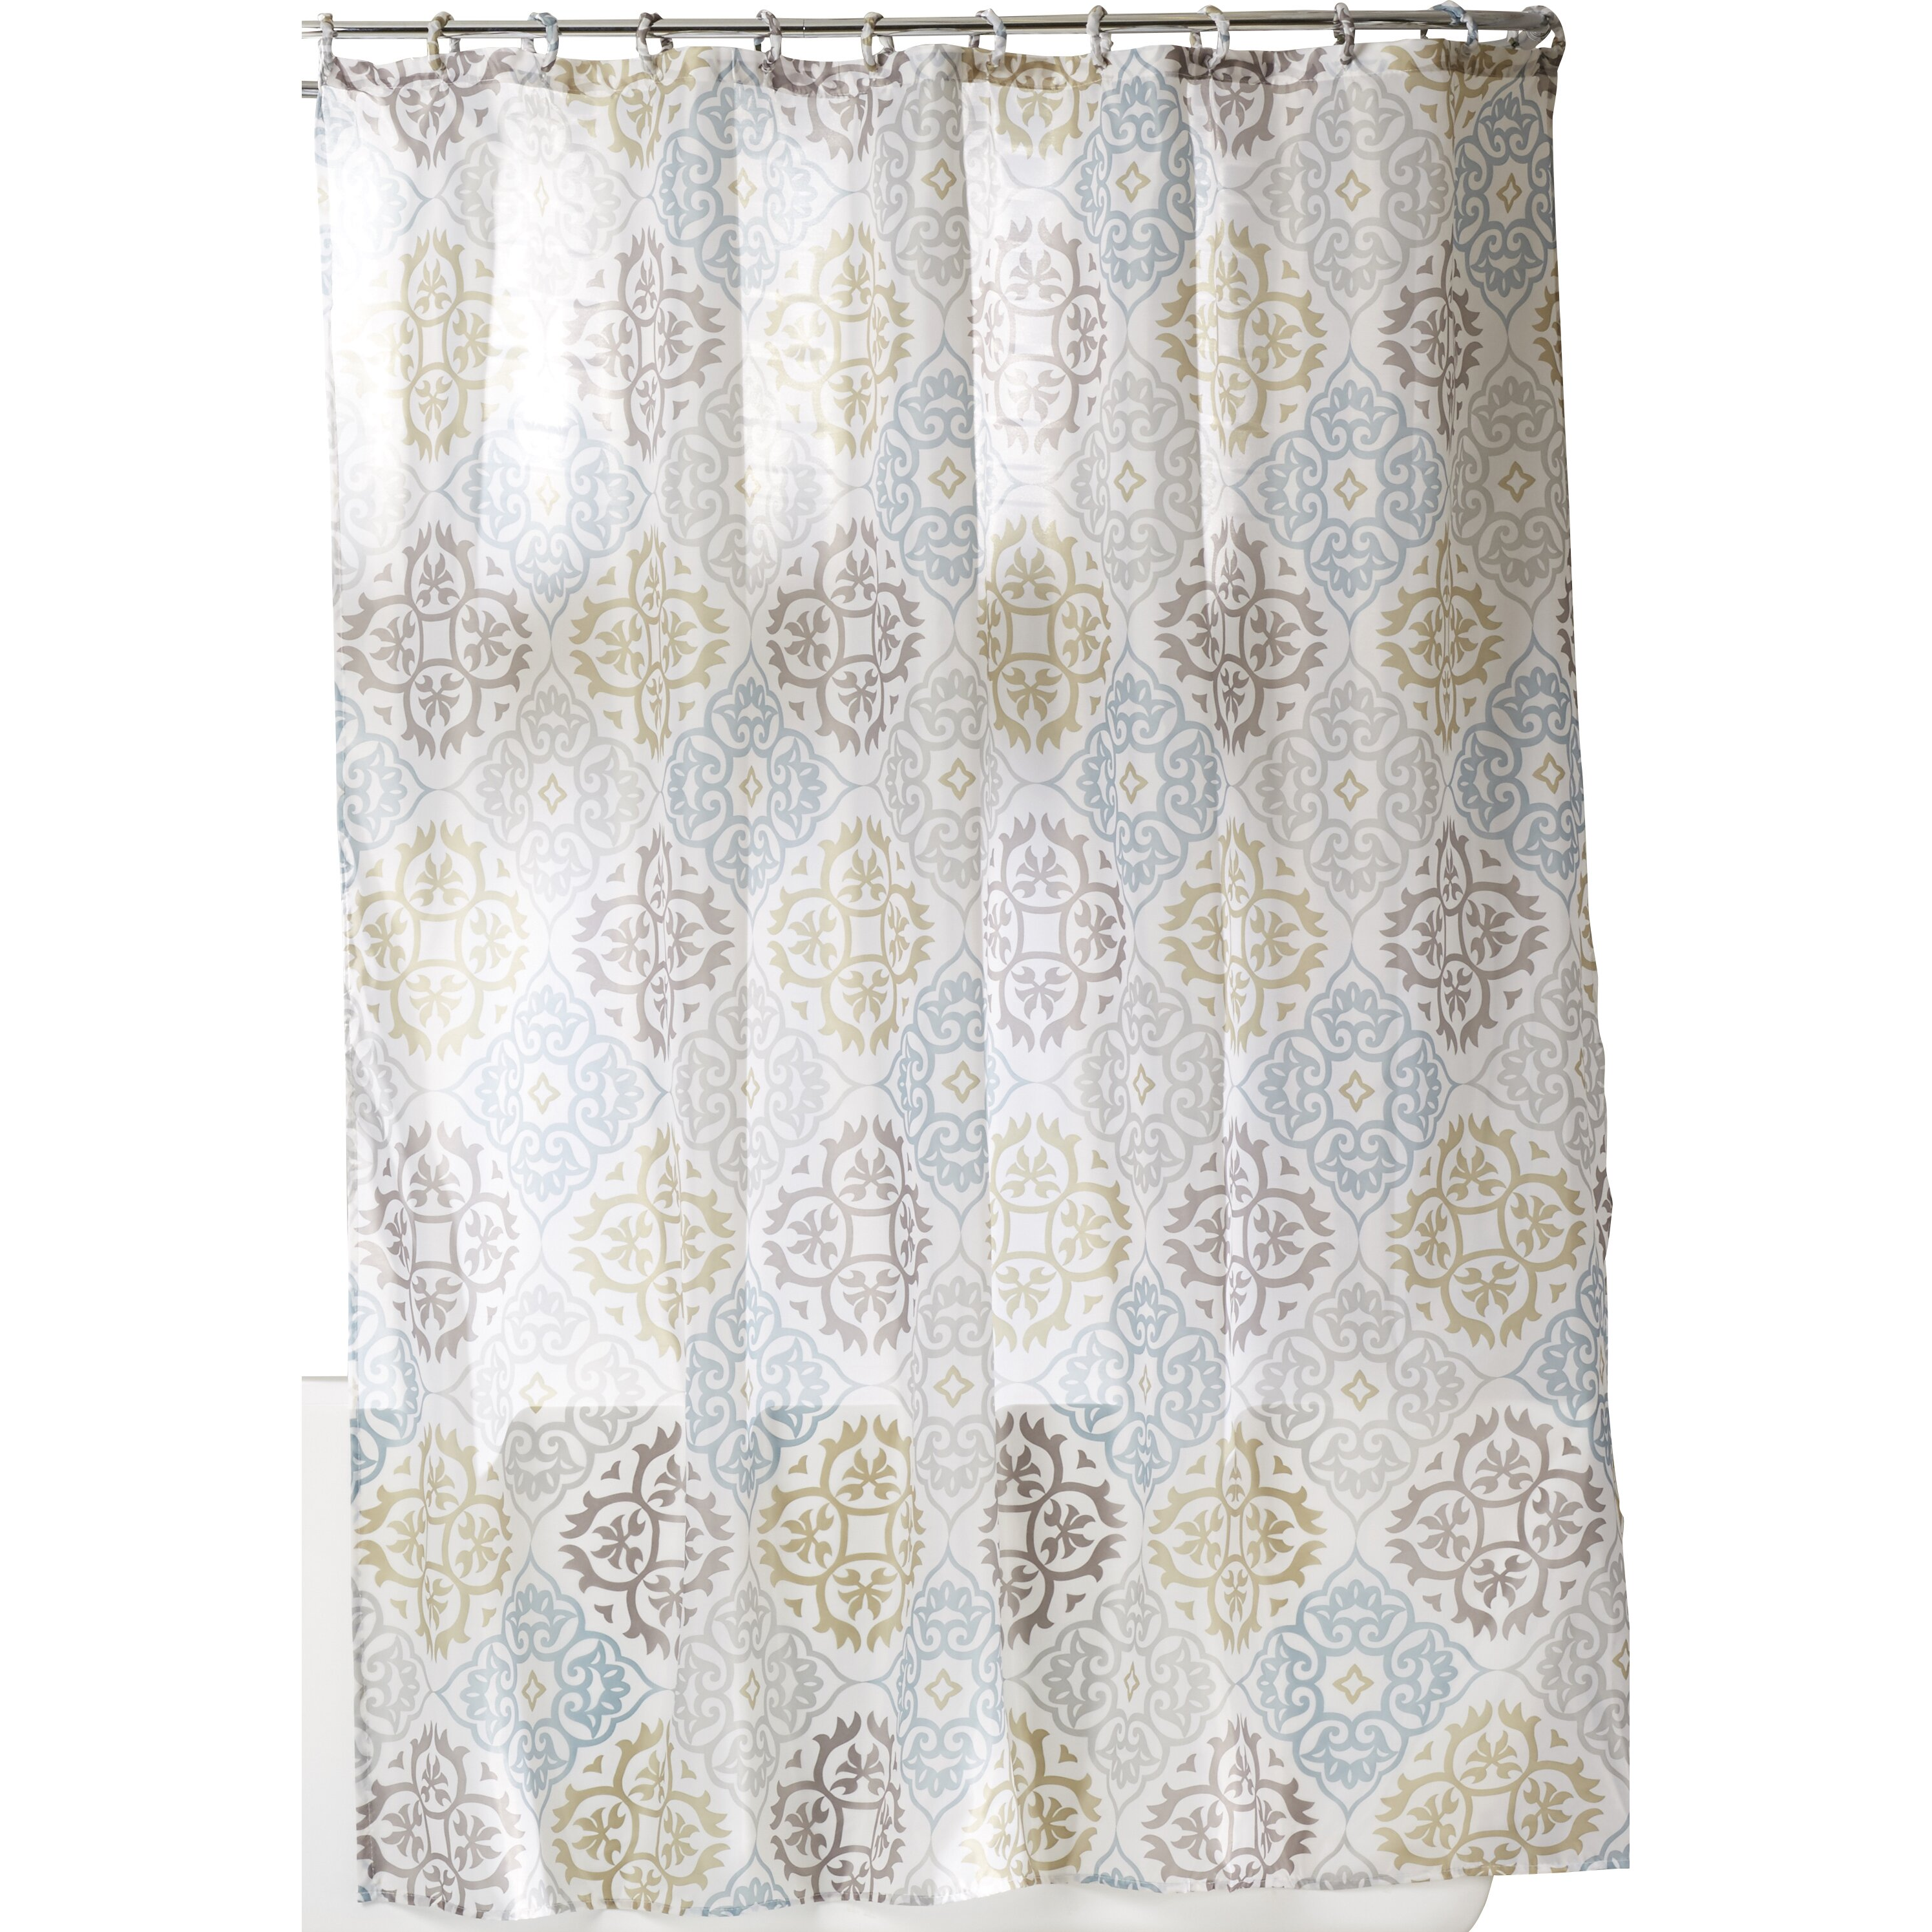 darby home co goldston shower curtain set reviews wayfair